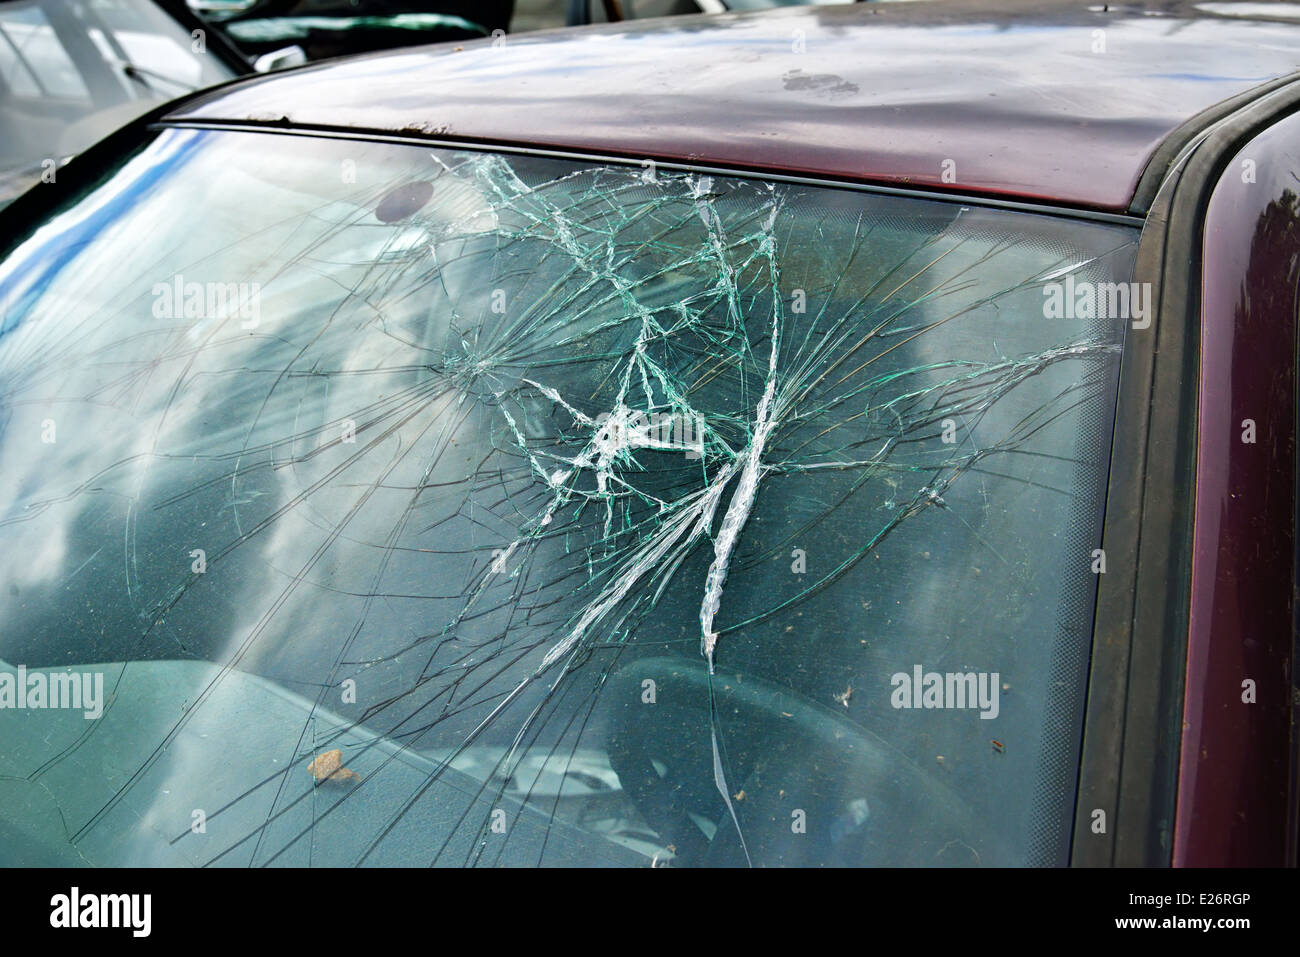 Windshield Broken High Resolution Stock Photography and Images - Alamy